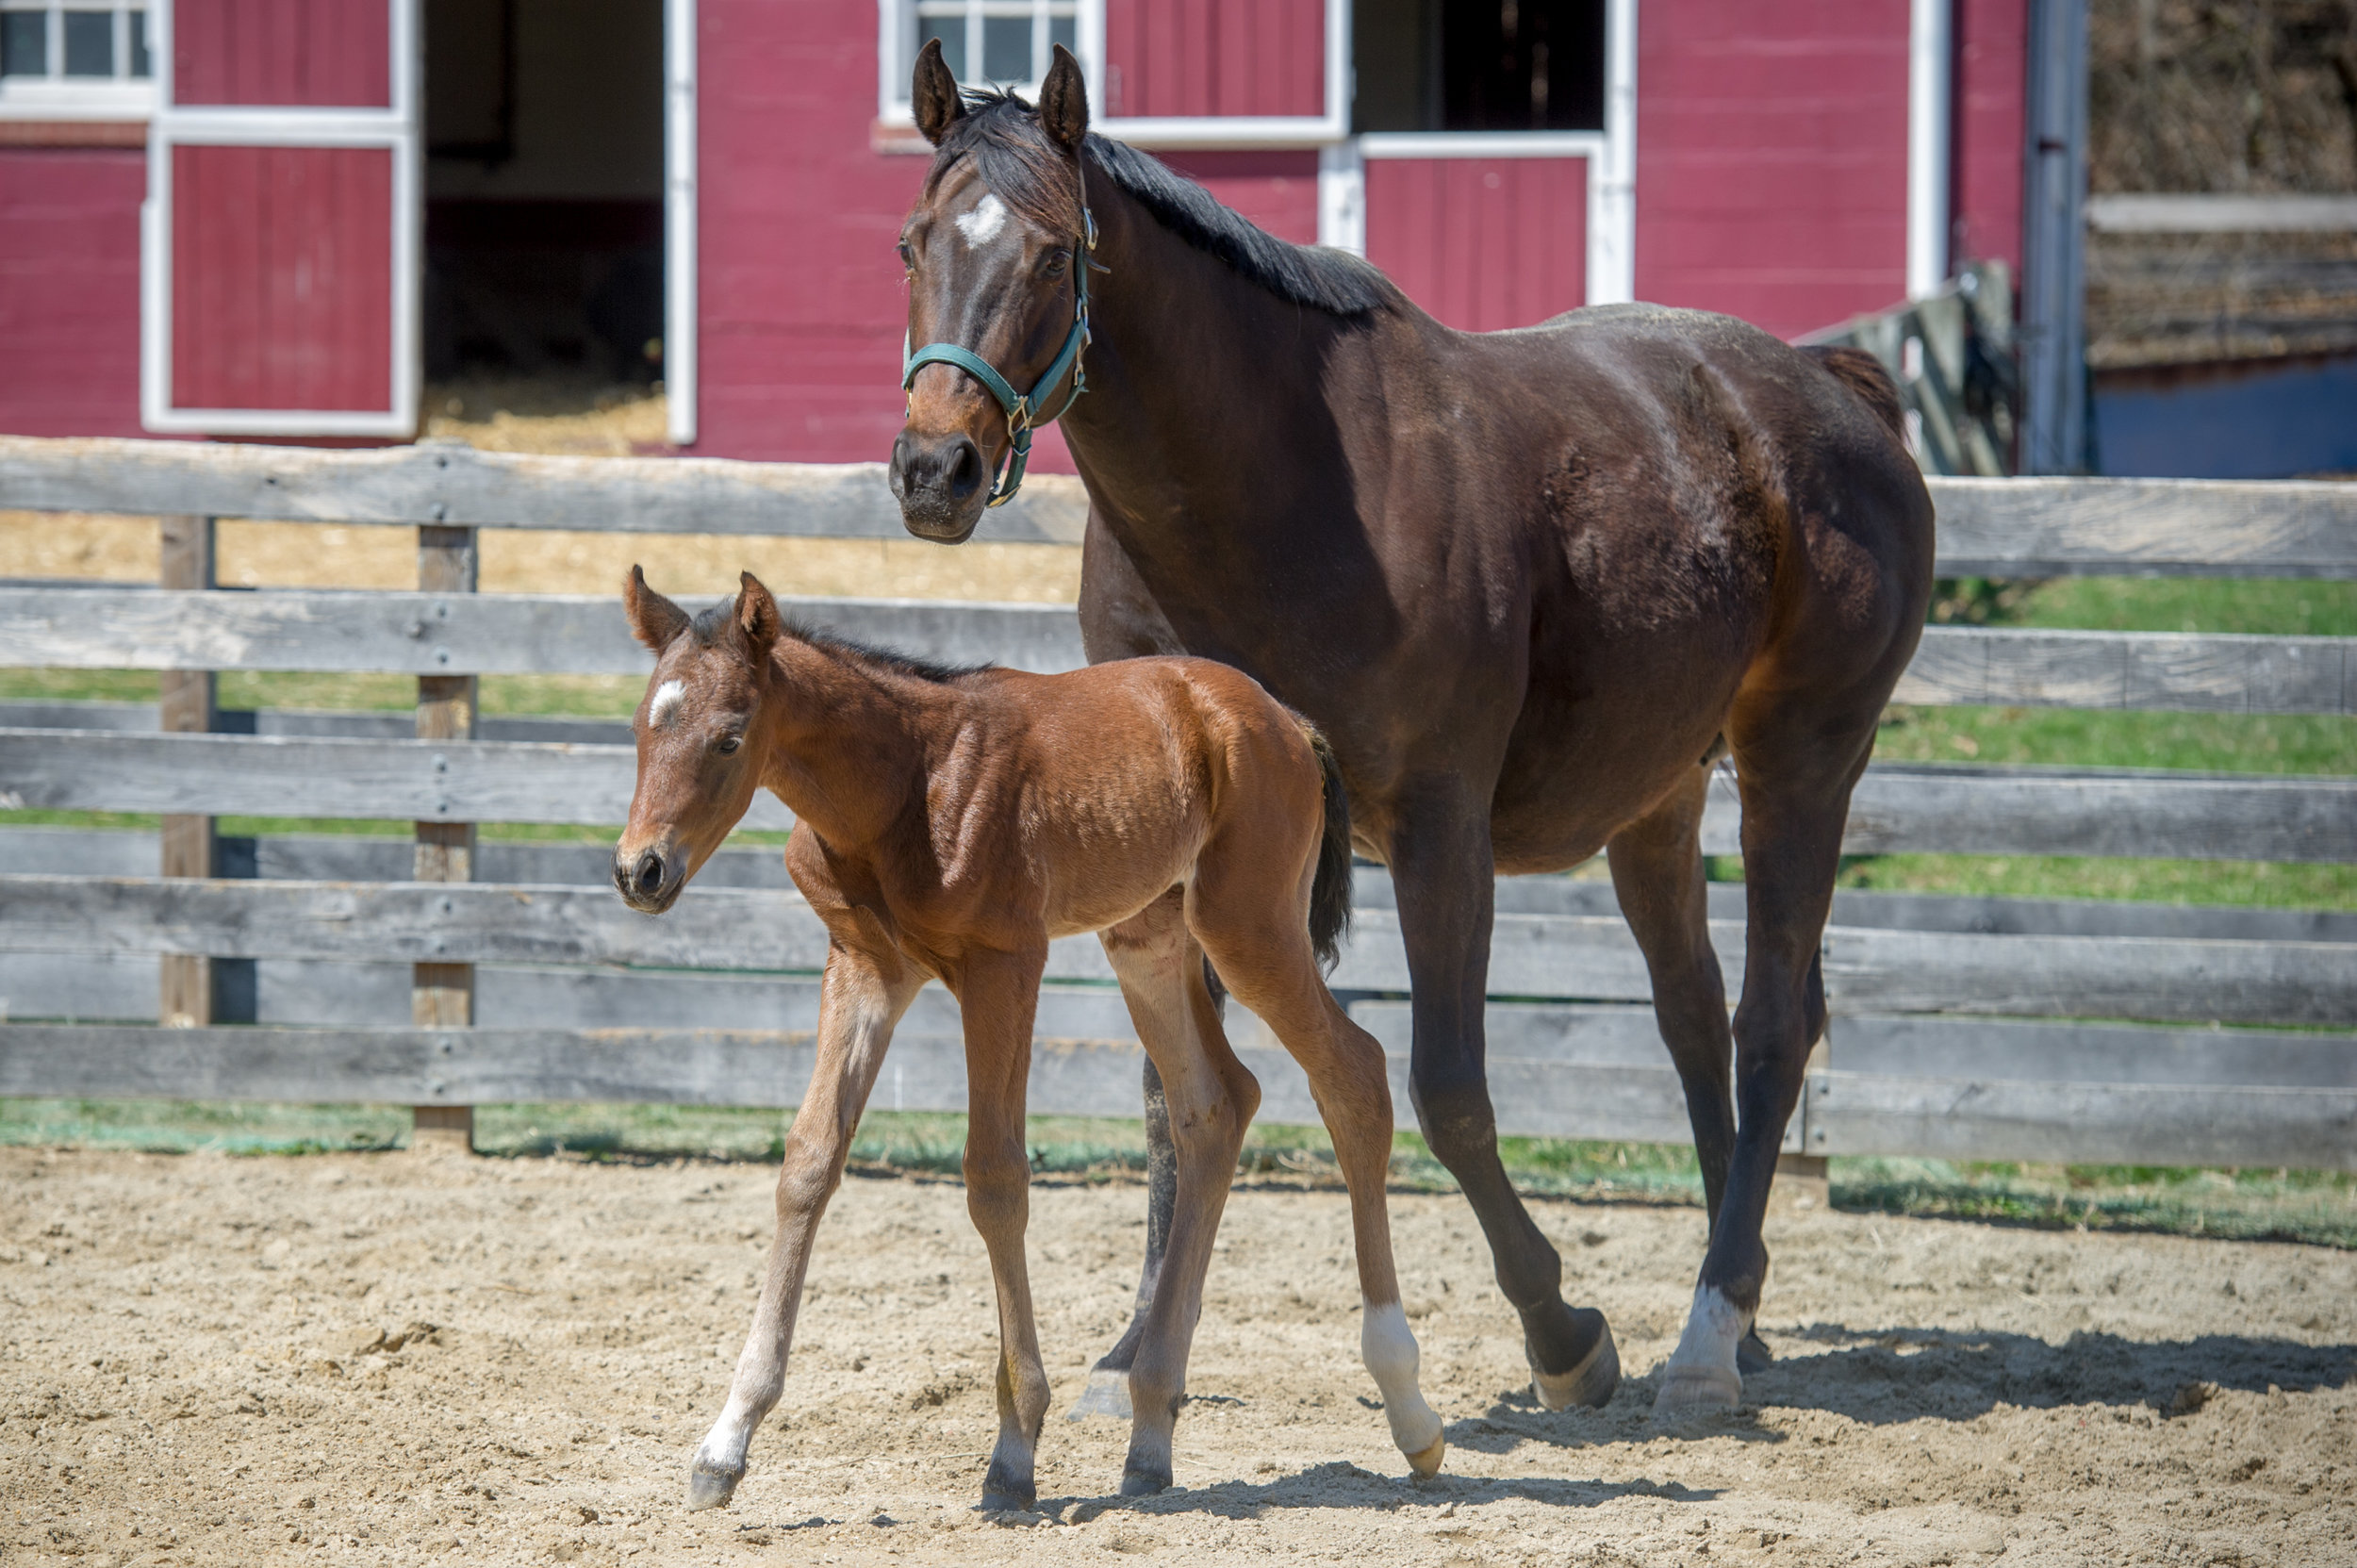 "Image shows a newborn foal at the University of Maryland campus farm. Photo Credit Edwin Remsberg.                           Normal     0                     false     false     false         EN-US     X-NONE     X-NONE                                                                                                                                                                                                                                                                                                                                                                                                                                                                                                                                                                                                                                                                                                                                                                                                                                                                                                                                                                                                                                                                                                                                                                                                                                                                                                                                                                                                                                                                                                                                                                                                                                                                                                                                 /* Style Definitions */ table.MsoNormalTable 	{mso-style-name:""Table Normal""; 	mso-tstyle-rowband-size:0; 	mso-tstyle-colband-size:0; 	mso-style-noshow:yes; 	mso-style-priority:99; 	mso-style-parent:""""; 	mso-padding-alt:0in 5.4pt 0in 5.4pt; 	mso-para-margin-top:0in; 	mso-para-margin-right:0in; 	mso-para-margin-bottom:8.0pt; 	mso-para-margin-left:0in; 	line-height:107%; 	mso-pagination:widow-orphan; 	font-size:11.0pt; 	font-family:""Calibri"",sans-serif; 	mso-ascii-font-family:Calibri; 	mso-ascii-theme-font:minor-latin; 	mso-hansi-font-family:Calibri; 	mso-hansi-theme-font:minor-latin;}"